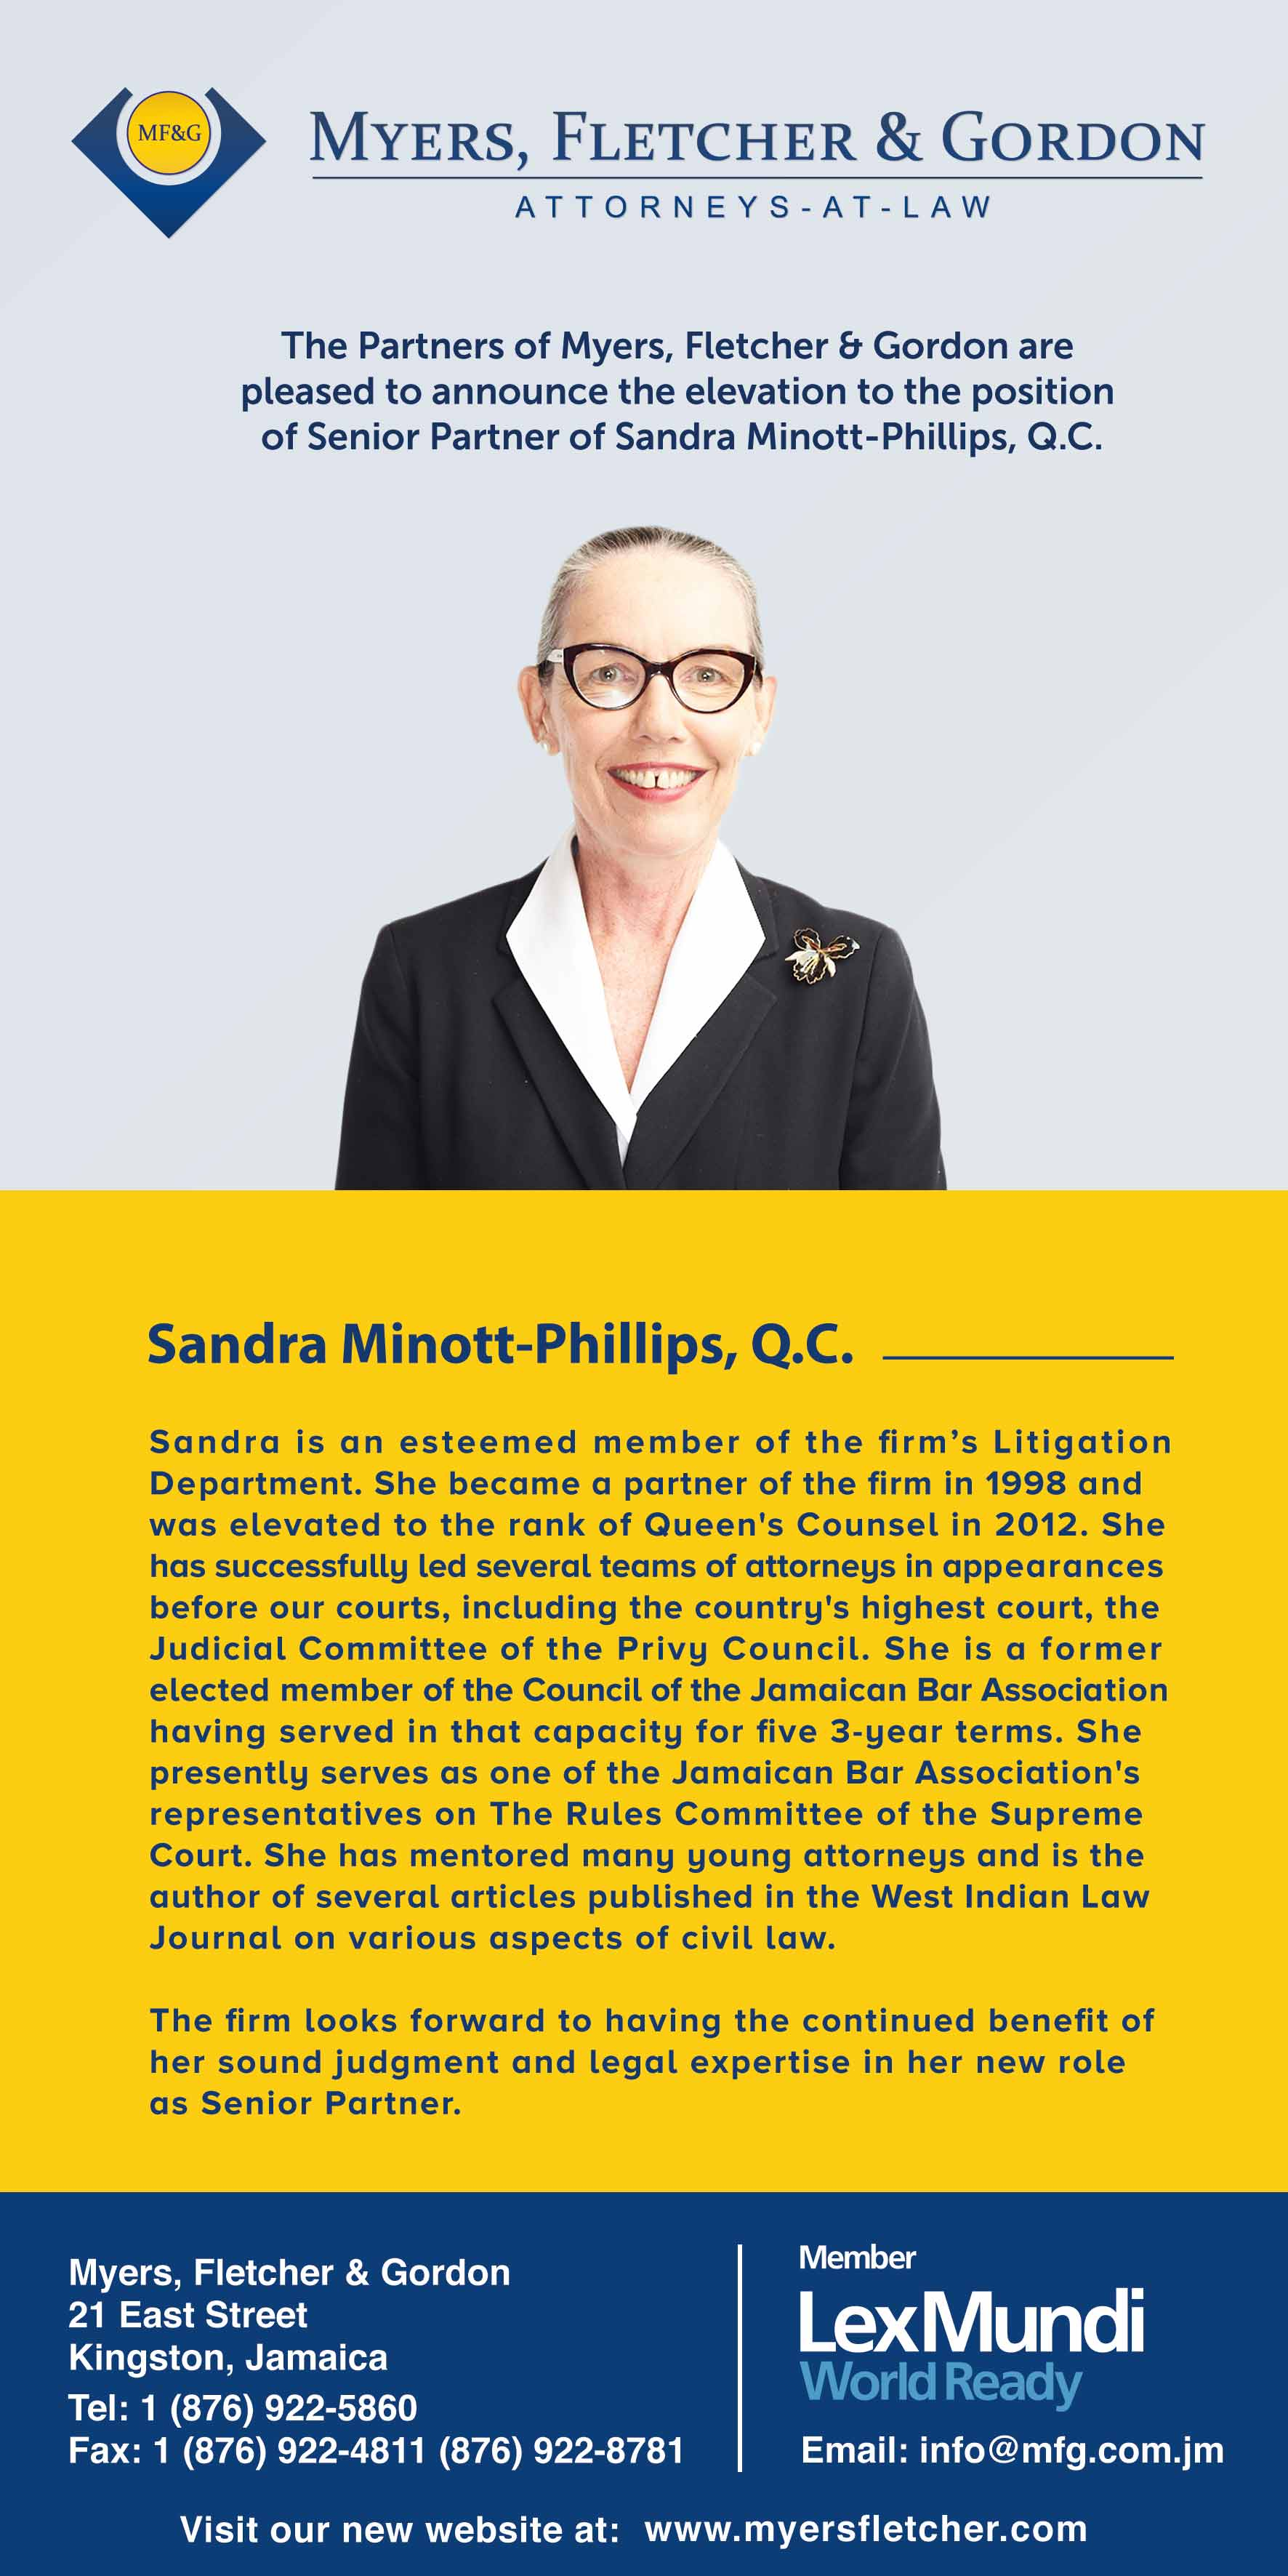 S phillips senior partner announcement print web